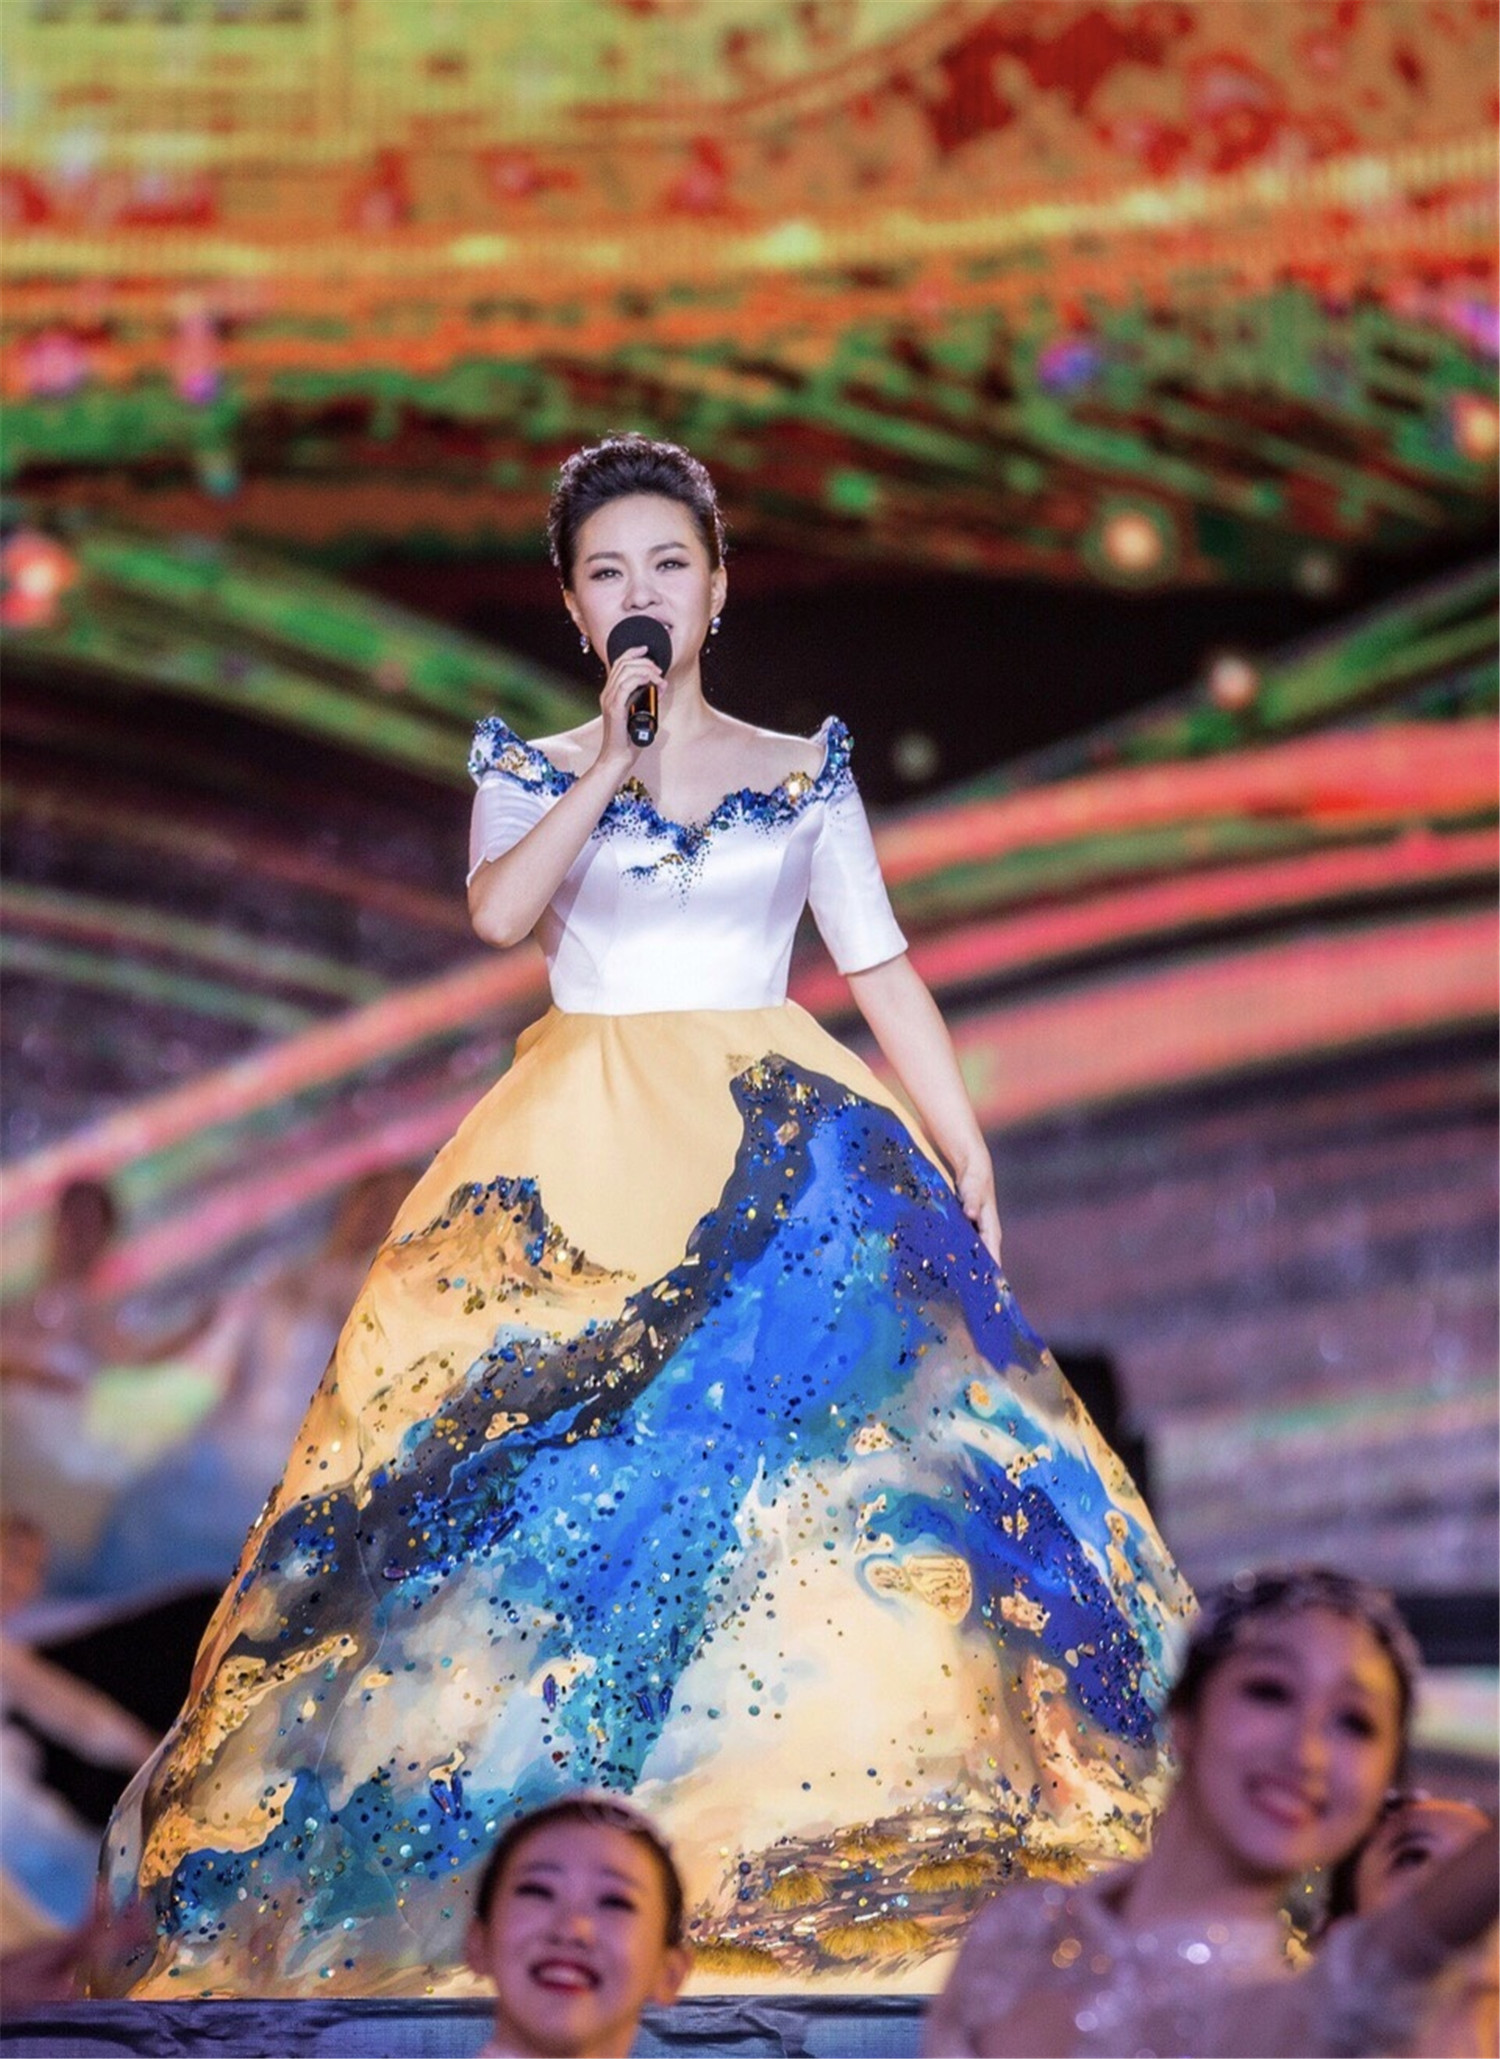 Lei jia dunhuang ballad: a ballad standing before the historical scale